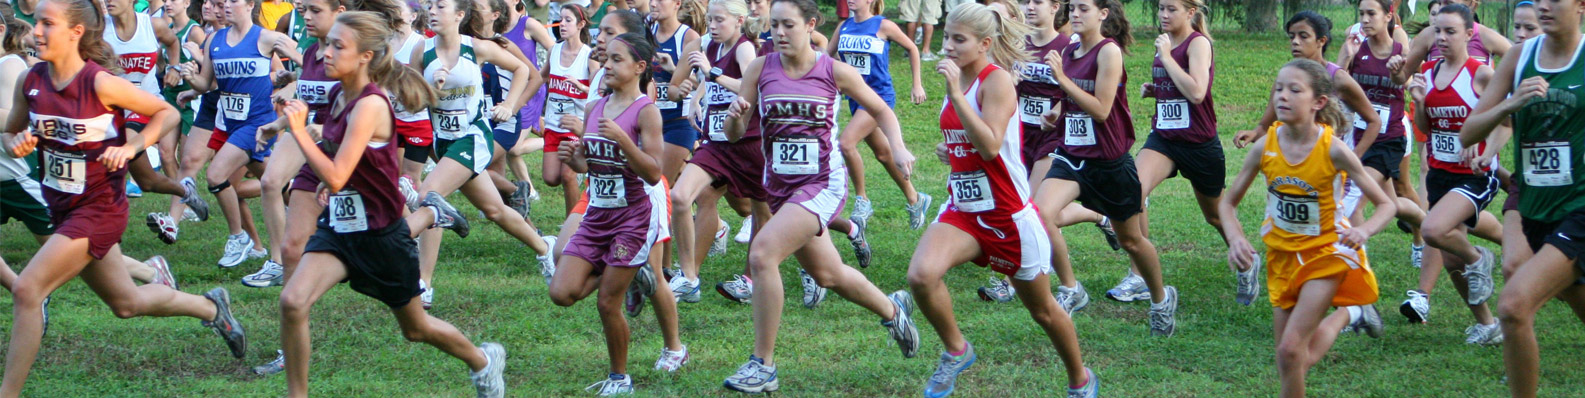 What's So Great About School Jog-a-thons, Fun Runs, School Walk-a-thons?